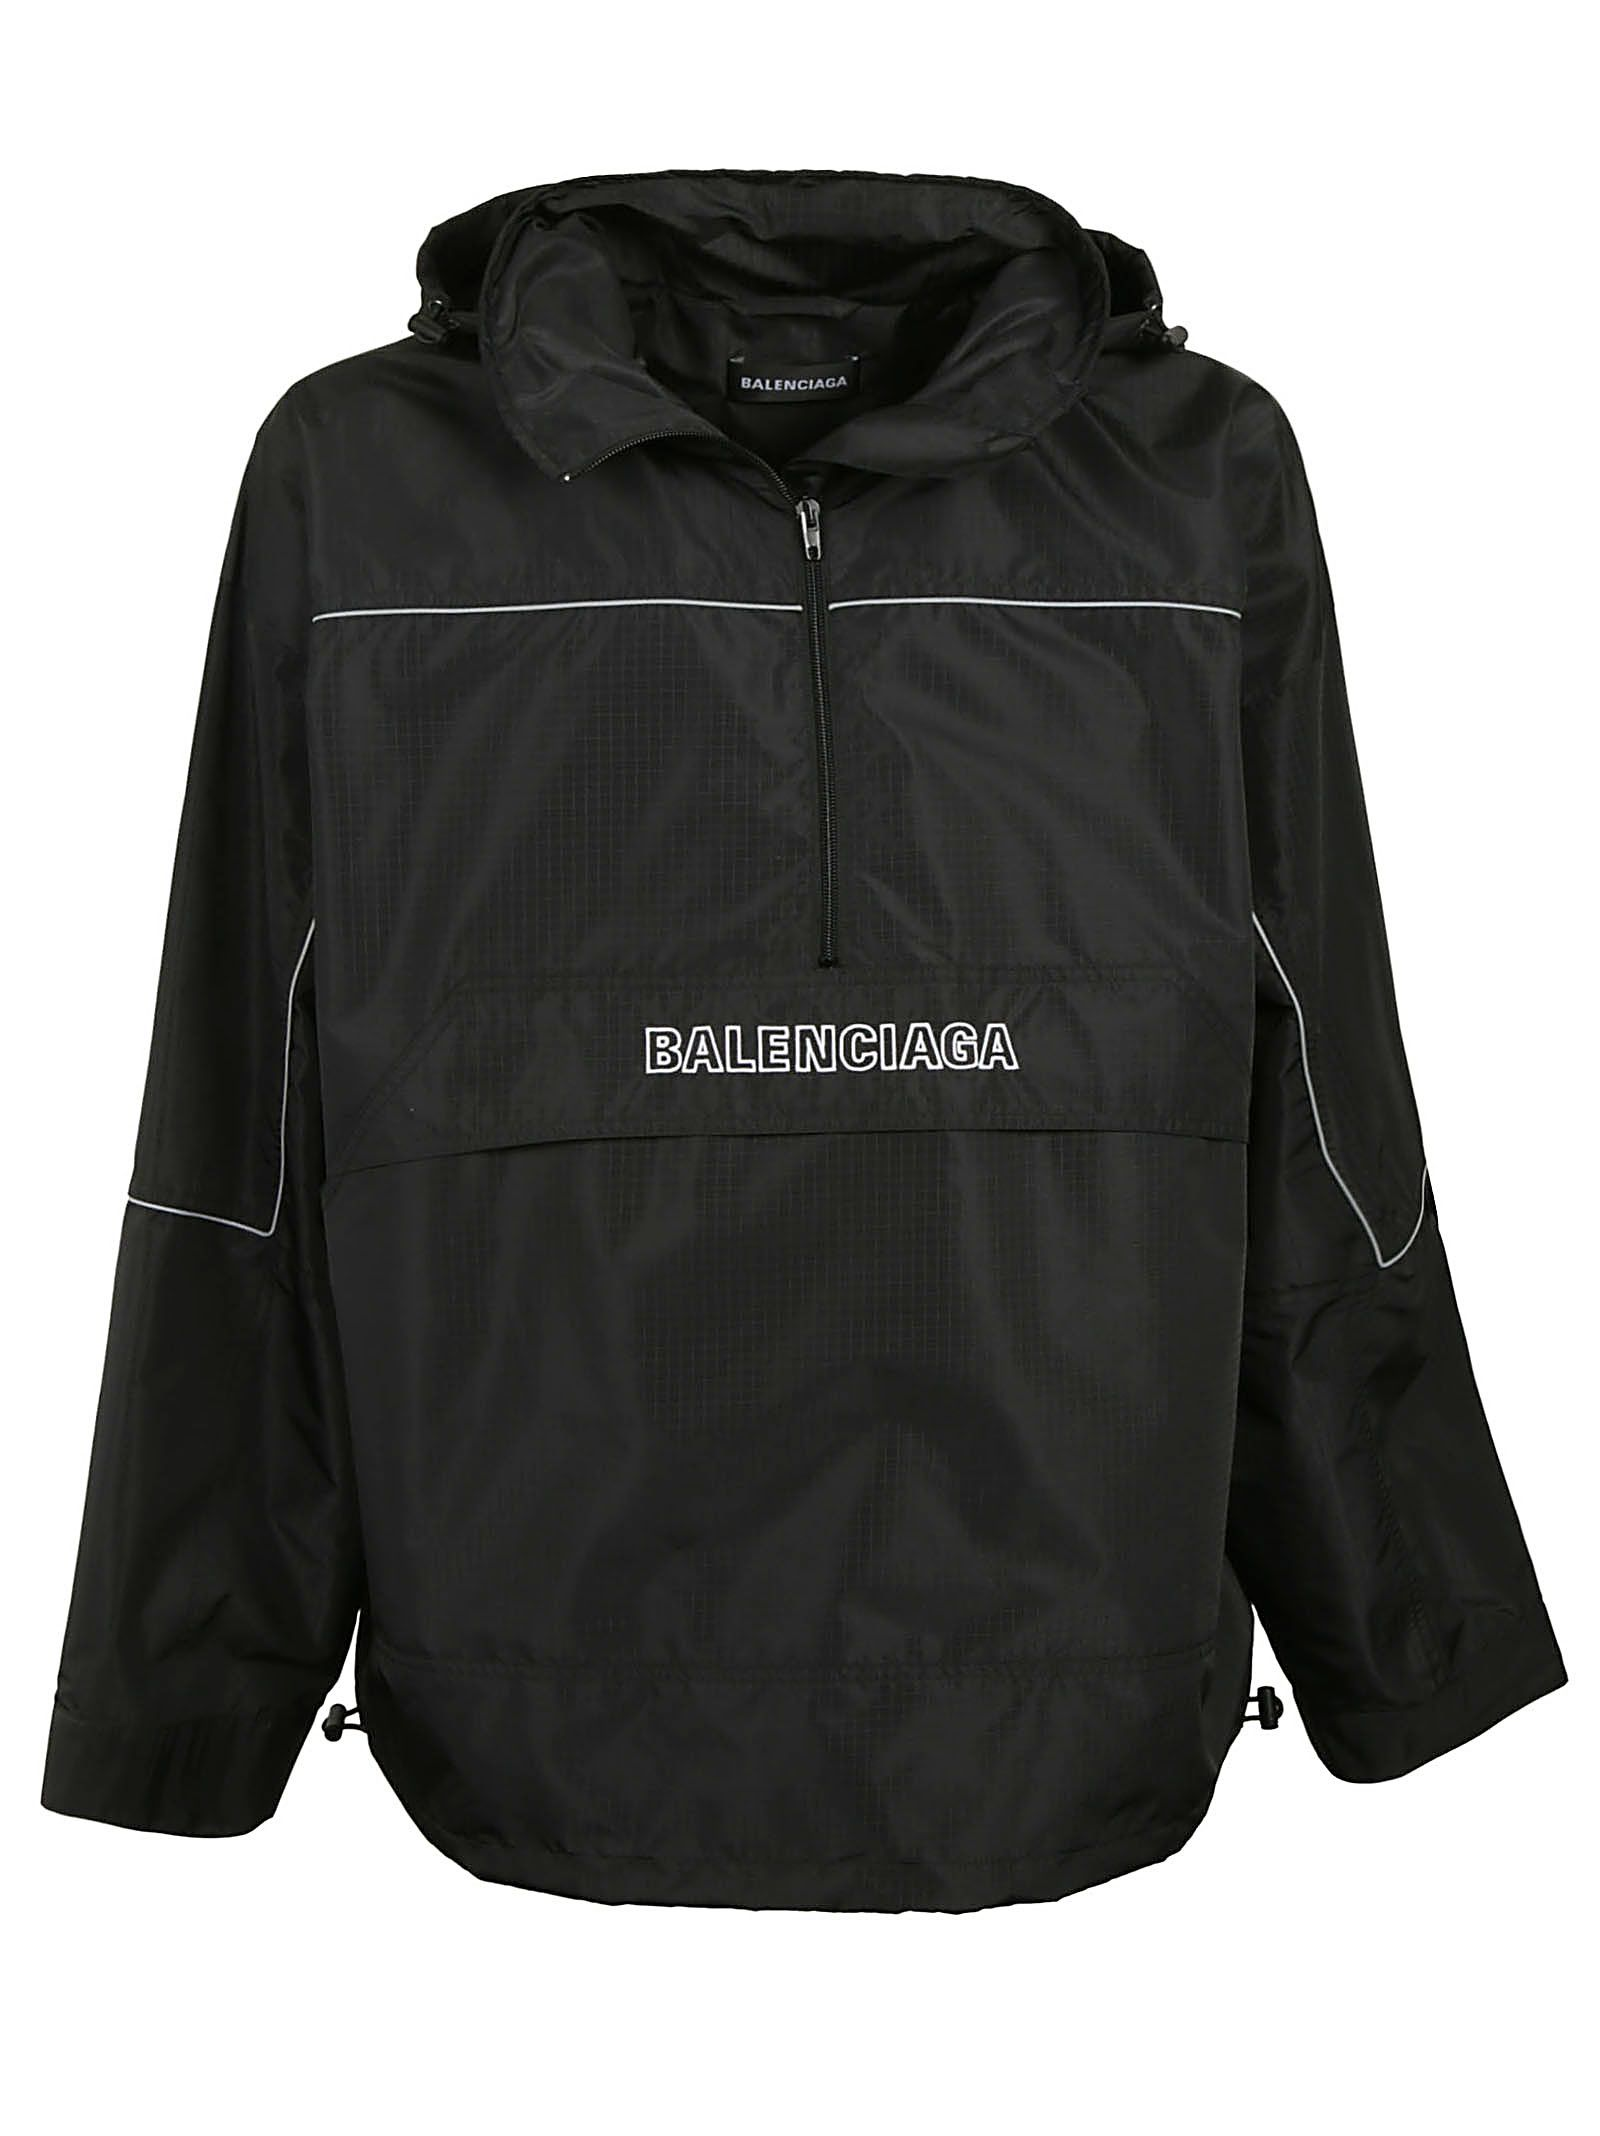 Balenciaga Zipped Jacket